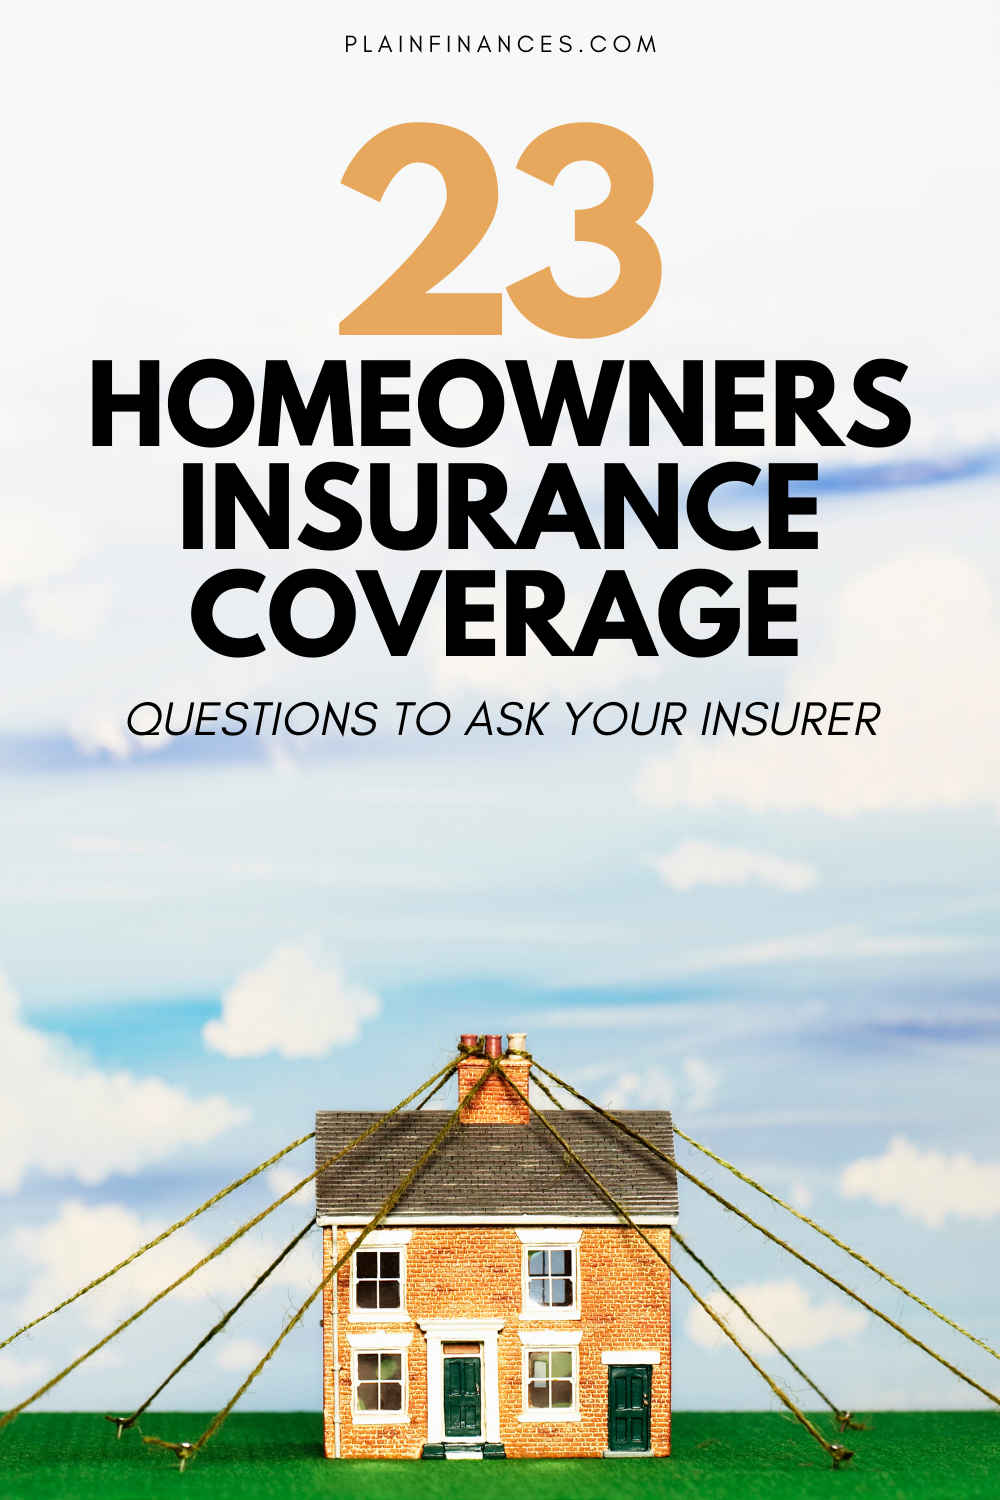 23 Homeowners Insurance Questions You Should Ask Your Insurer - Plain Finances